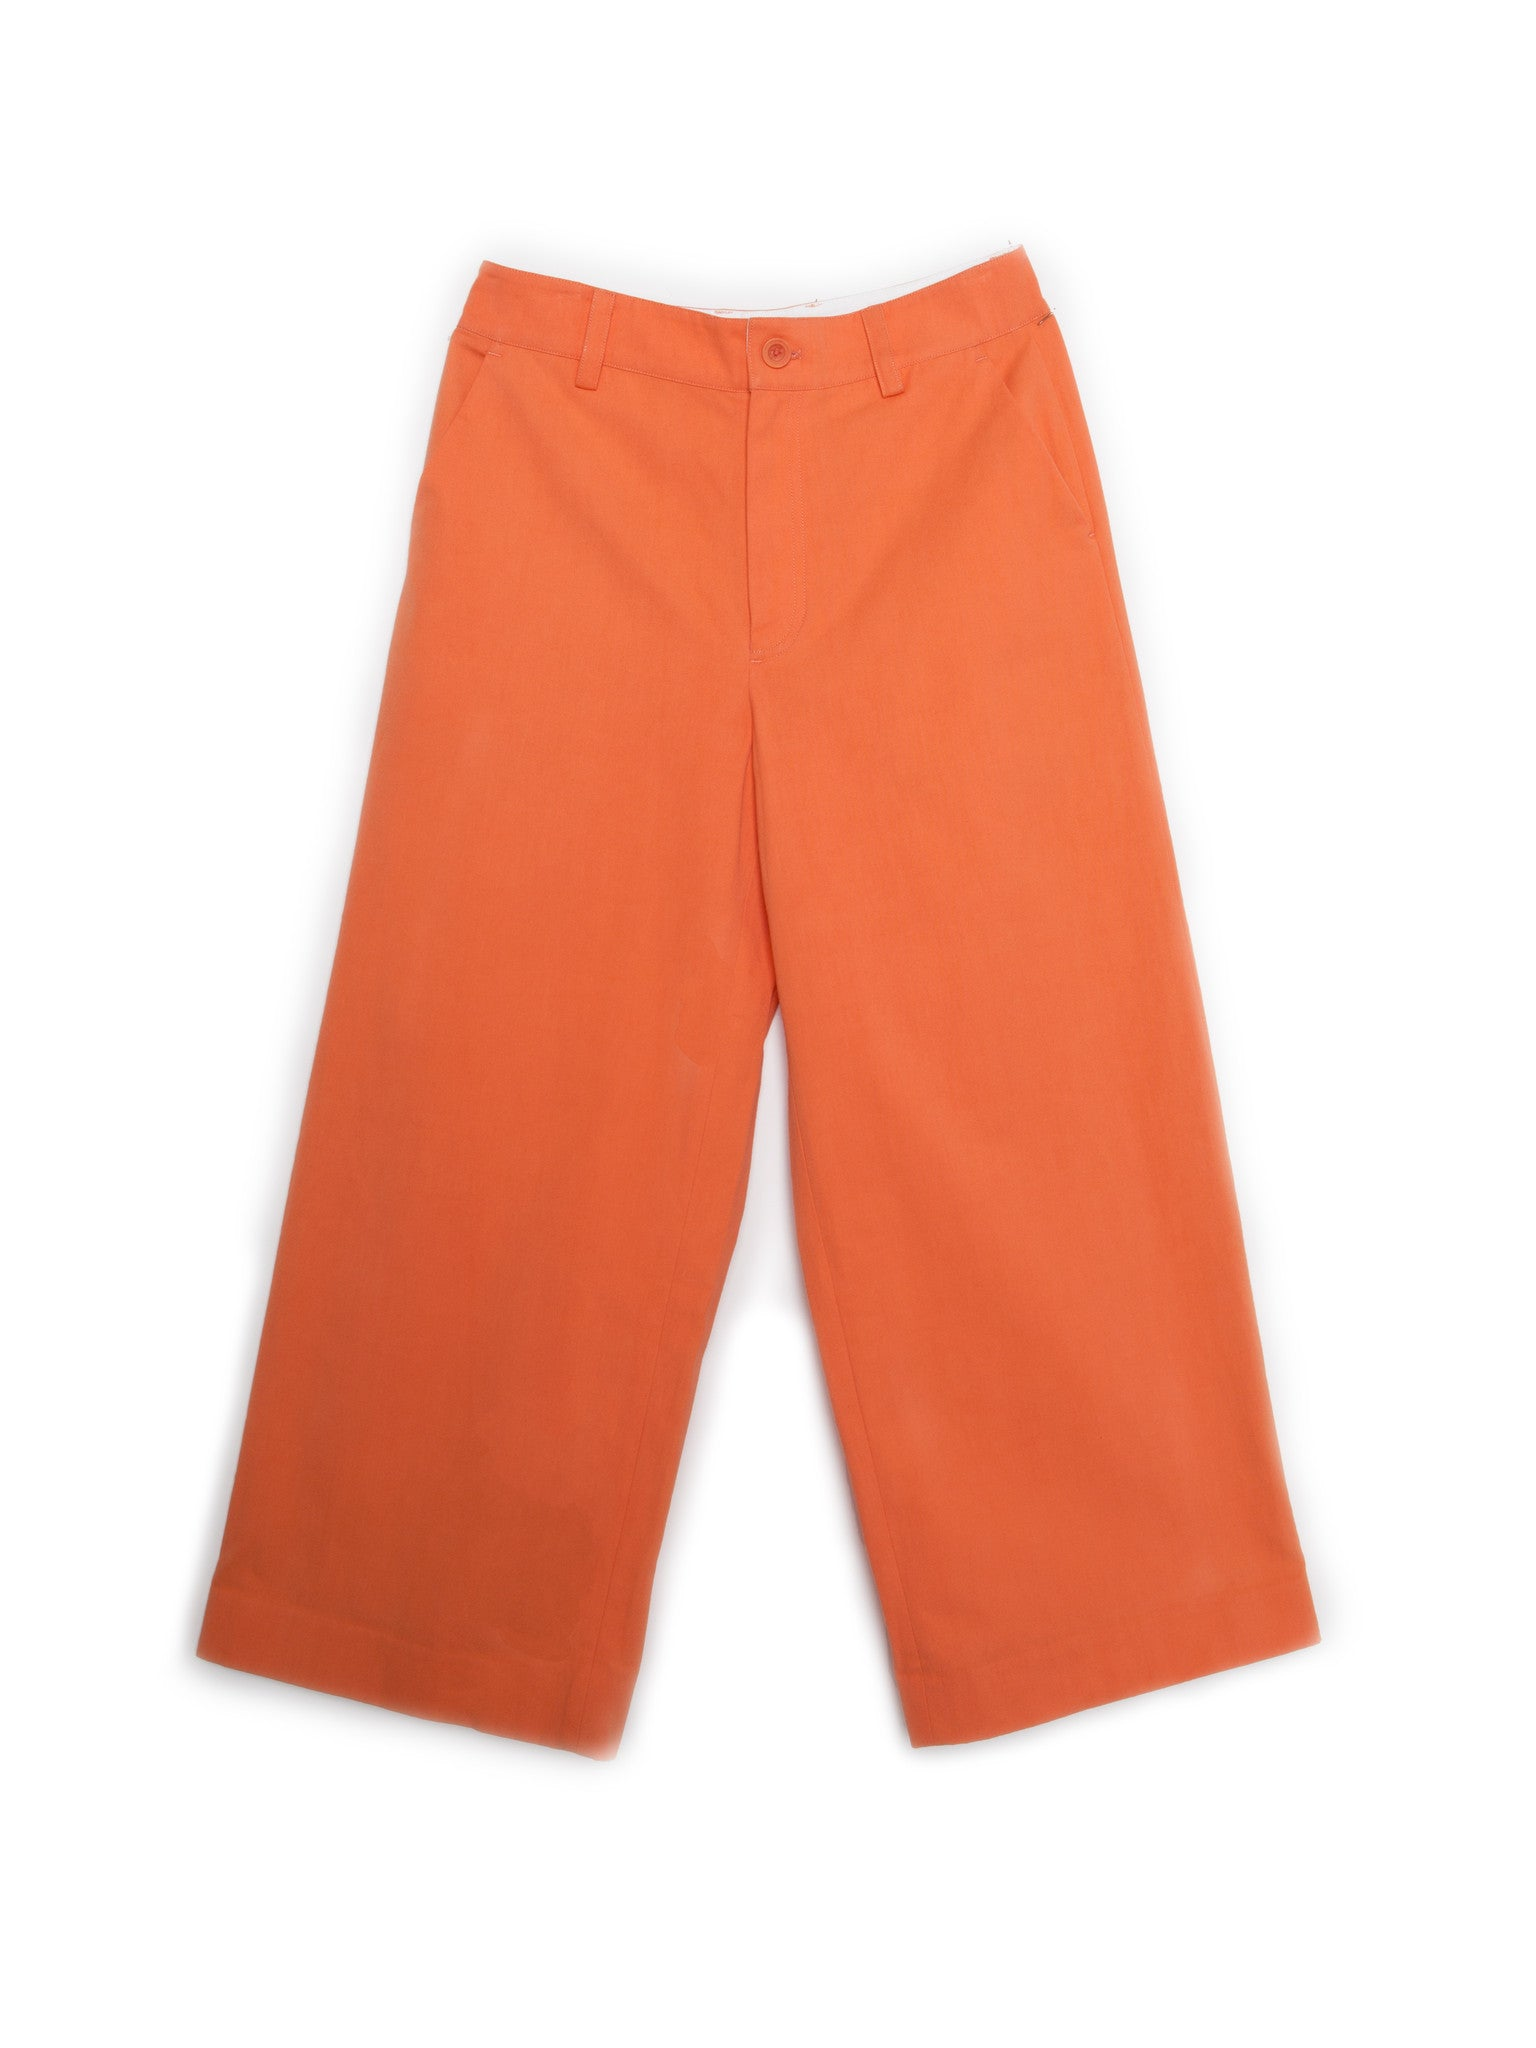 Jajouka Trousers (Coral)